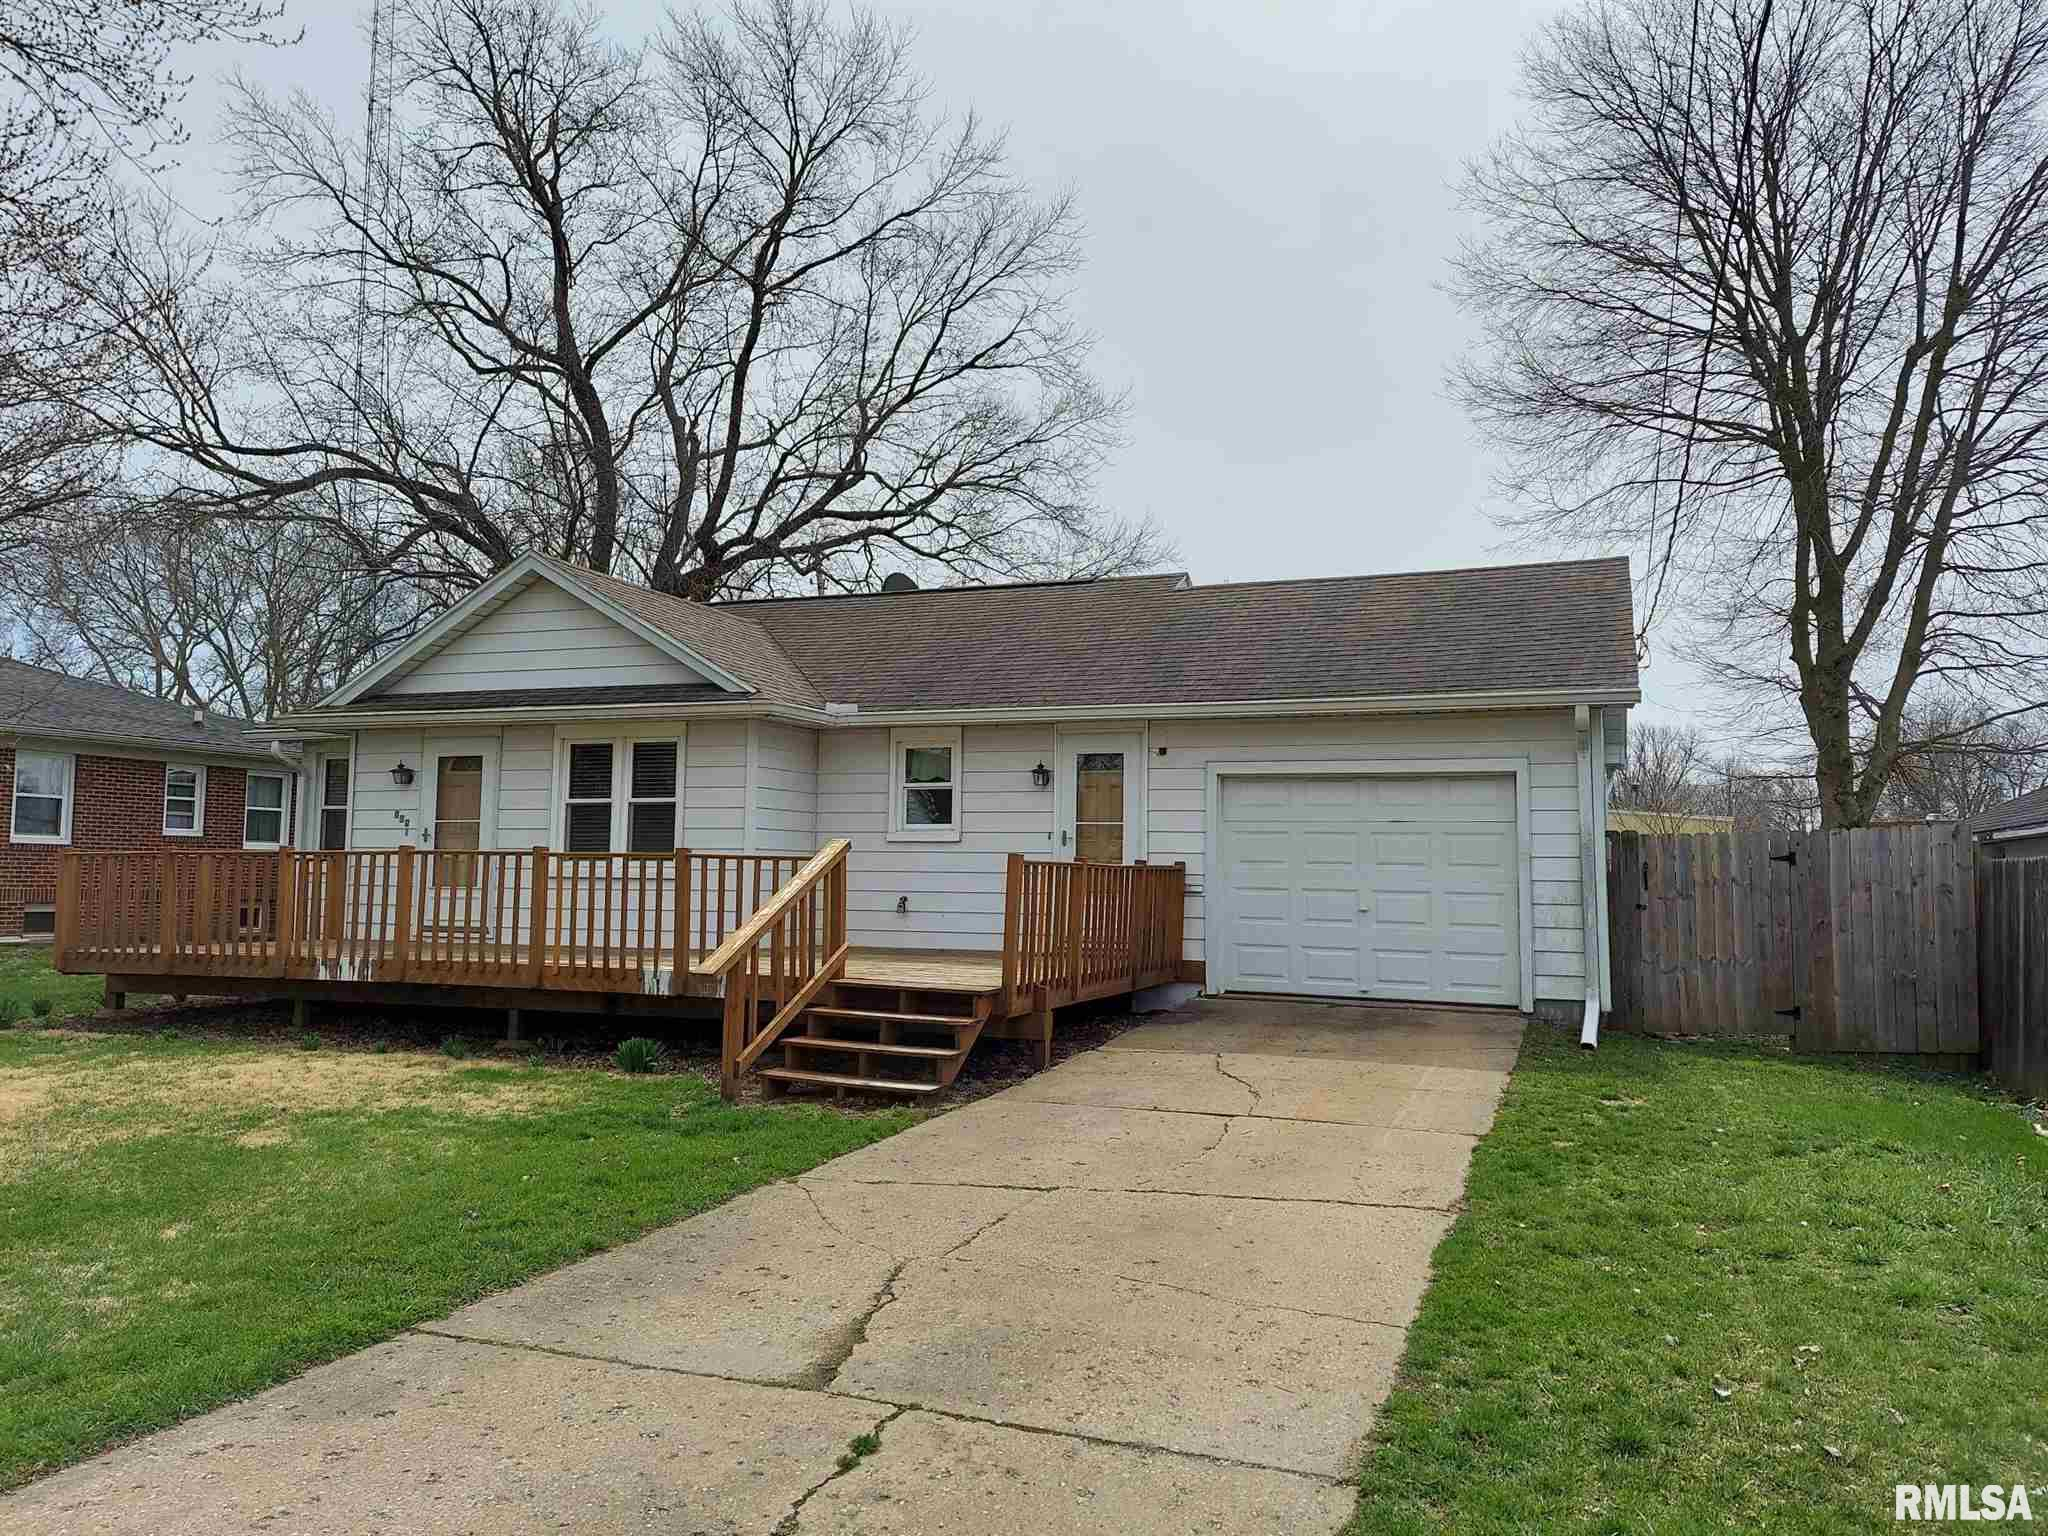 108 SAYRE Property Photo - Green Valley, IL real estate listing